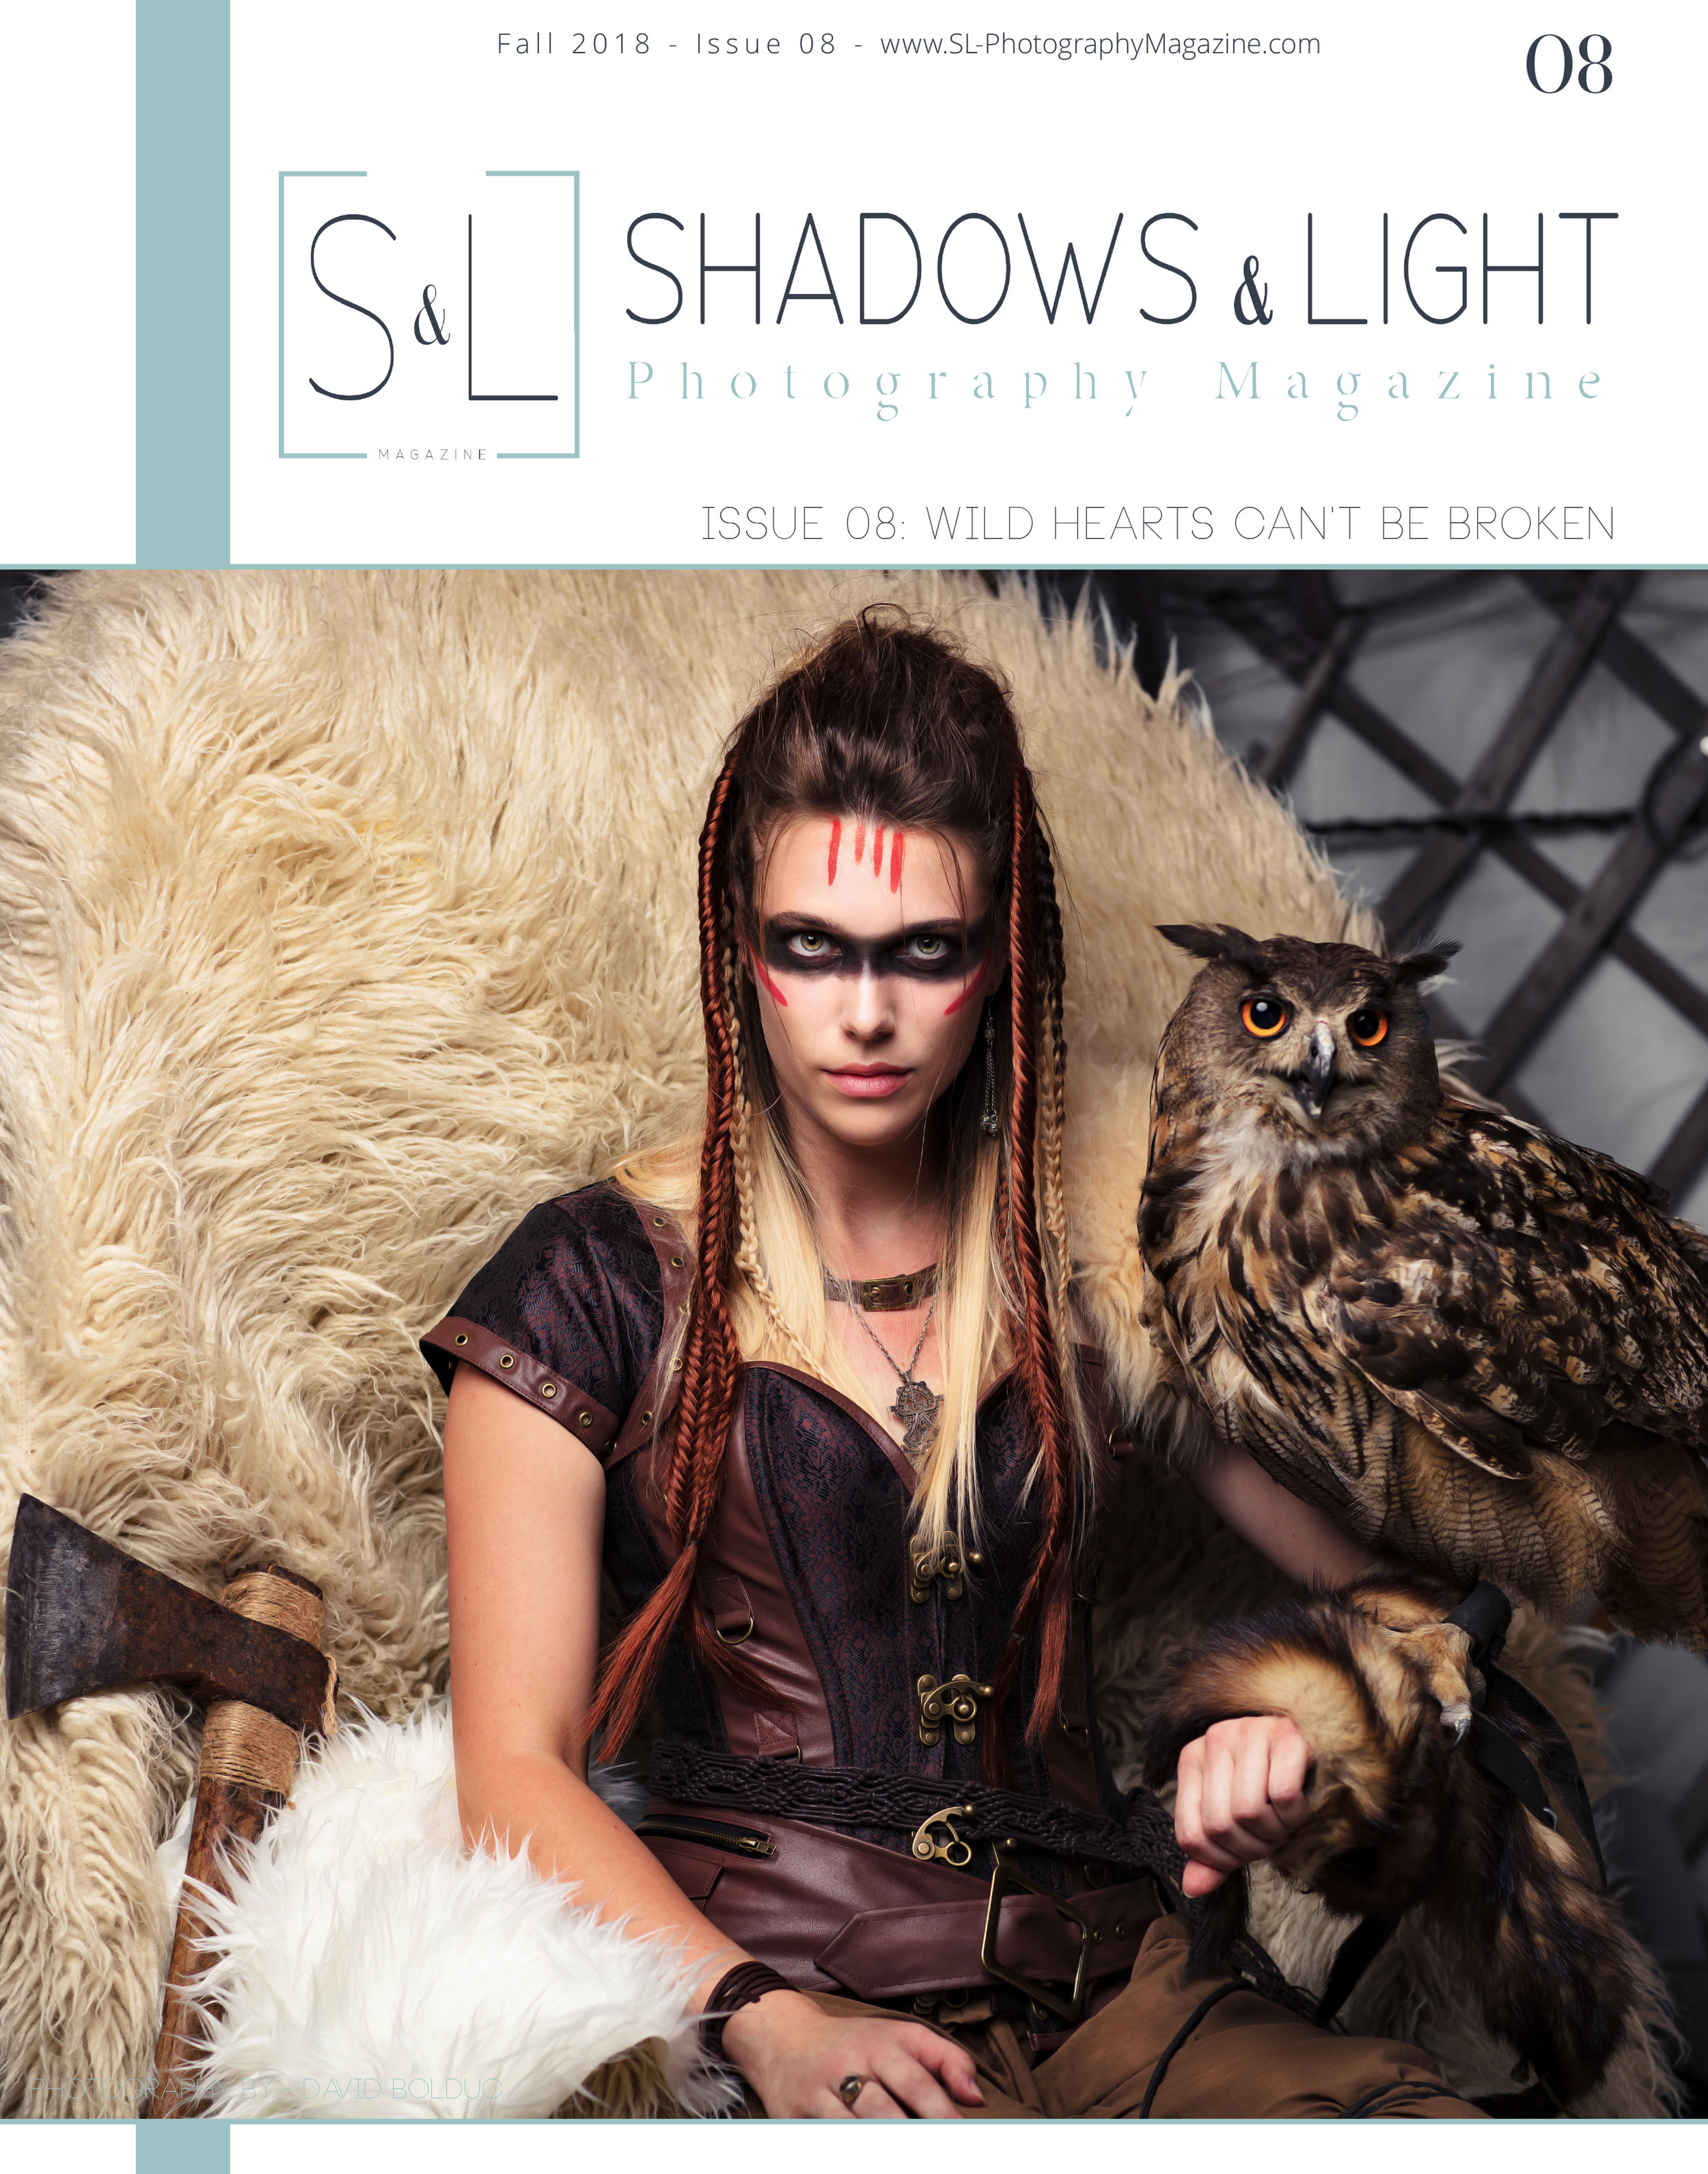 SL - Photography Magazine Issue 08